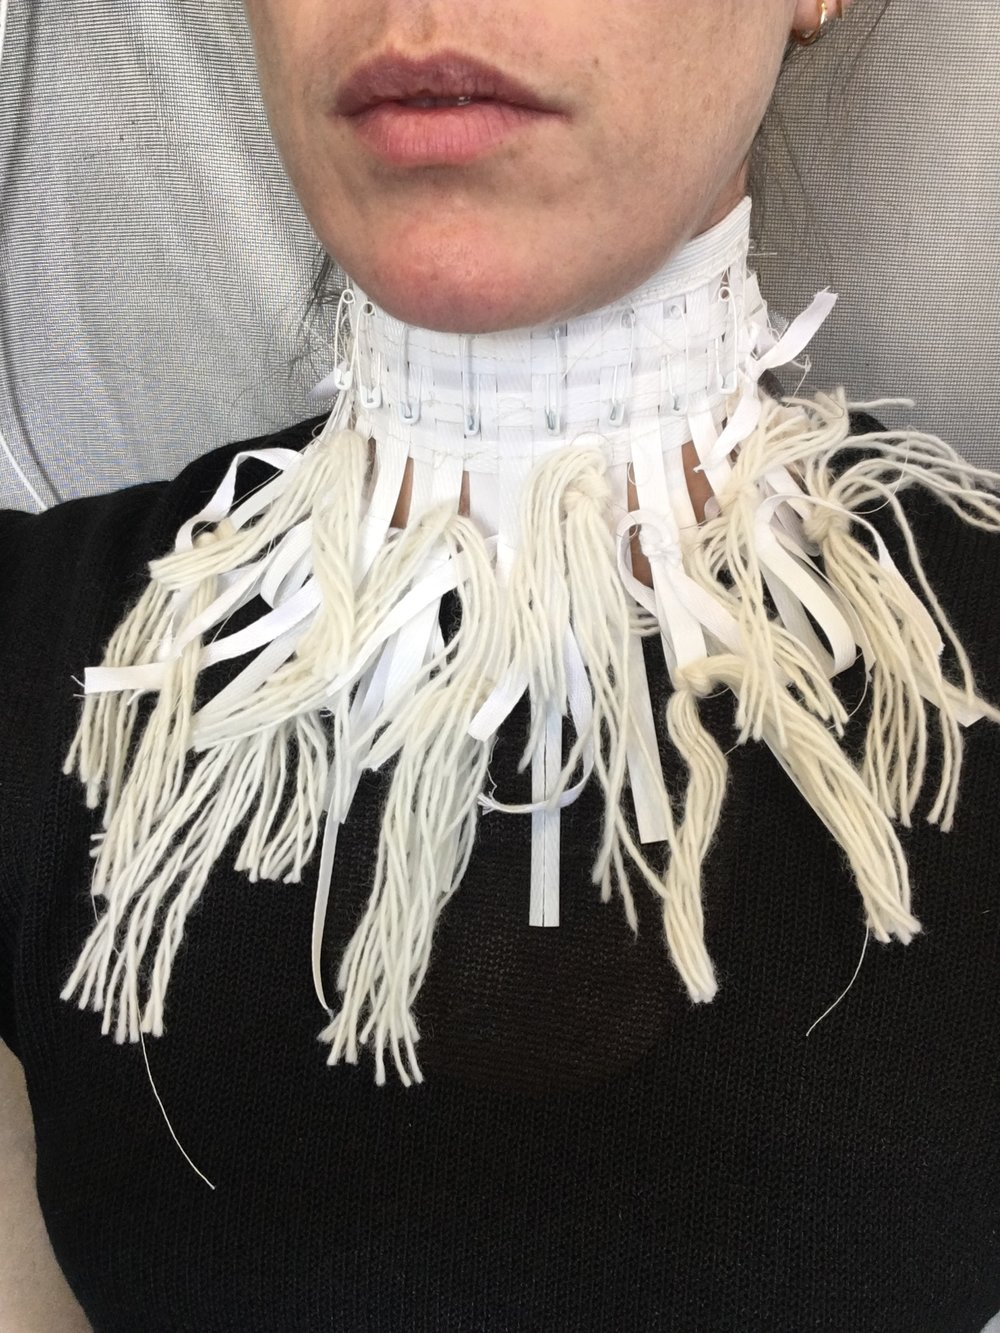 Dissent Collar #7 (Plastic strapping, yarn, thread, elastic, safety pins)